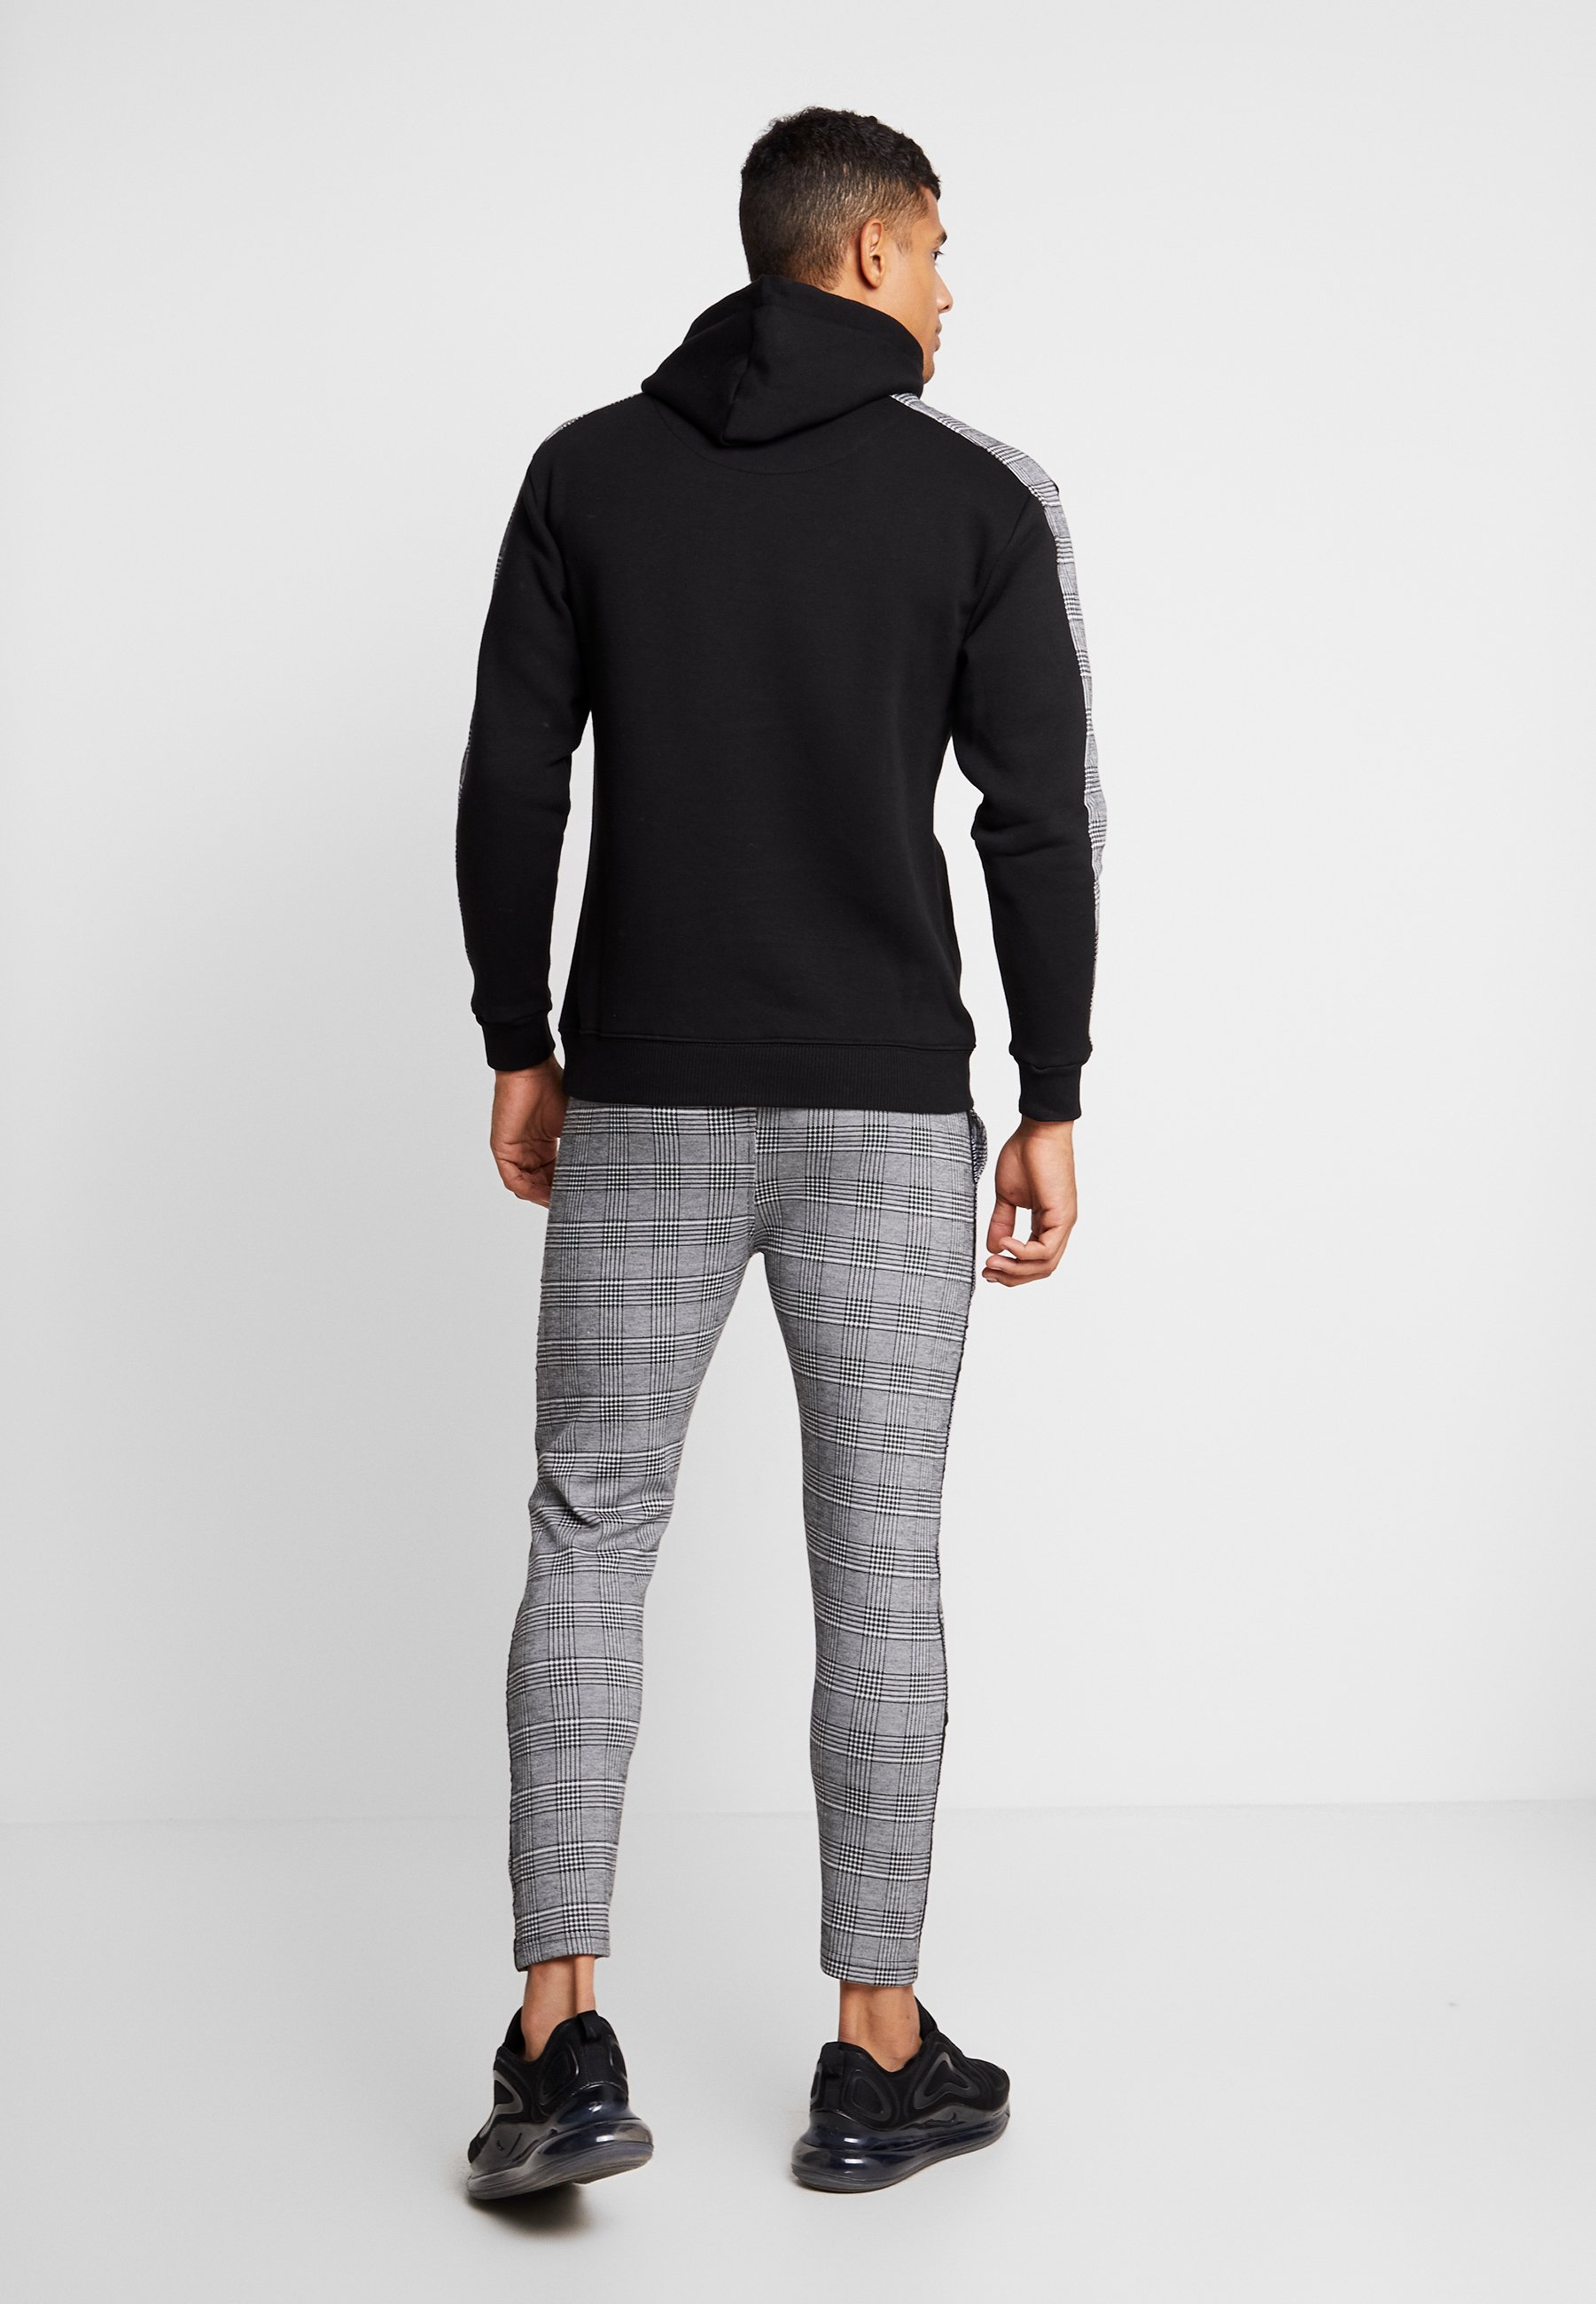 Grey Nothing Tailored Of Good Wales For BrandedPantalon Pants Classique Fitted With Prince Check wPk8On0